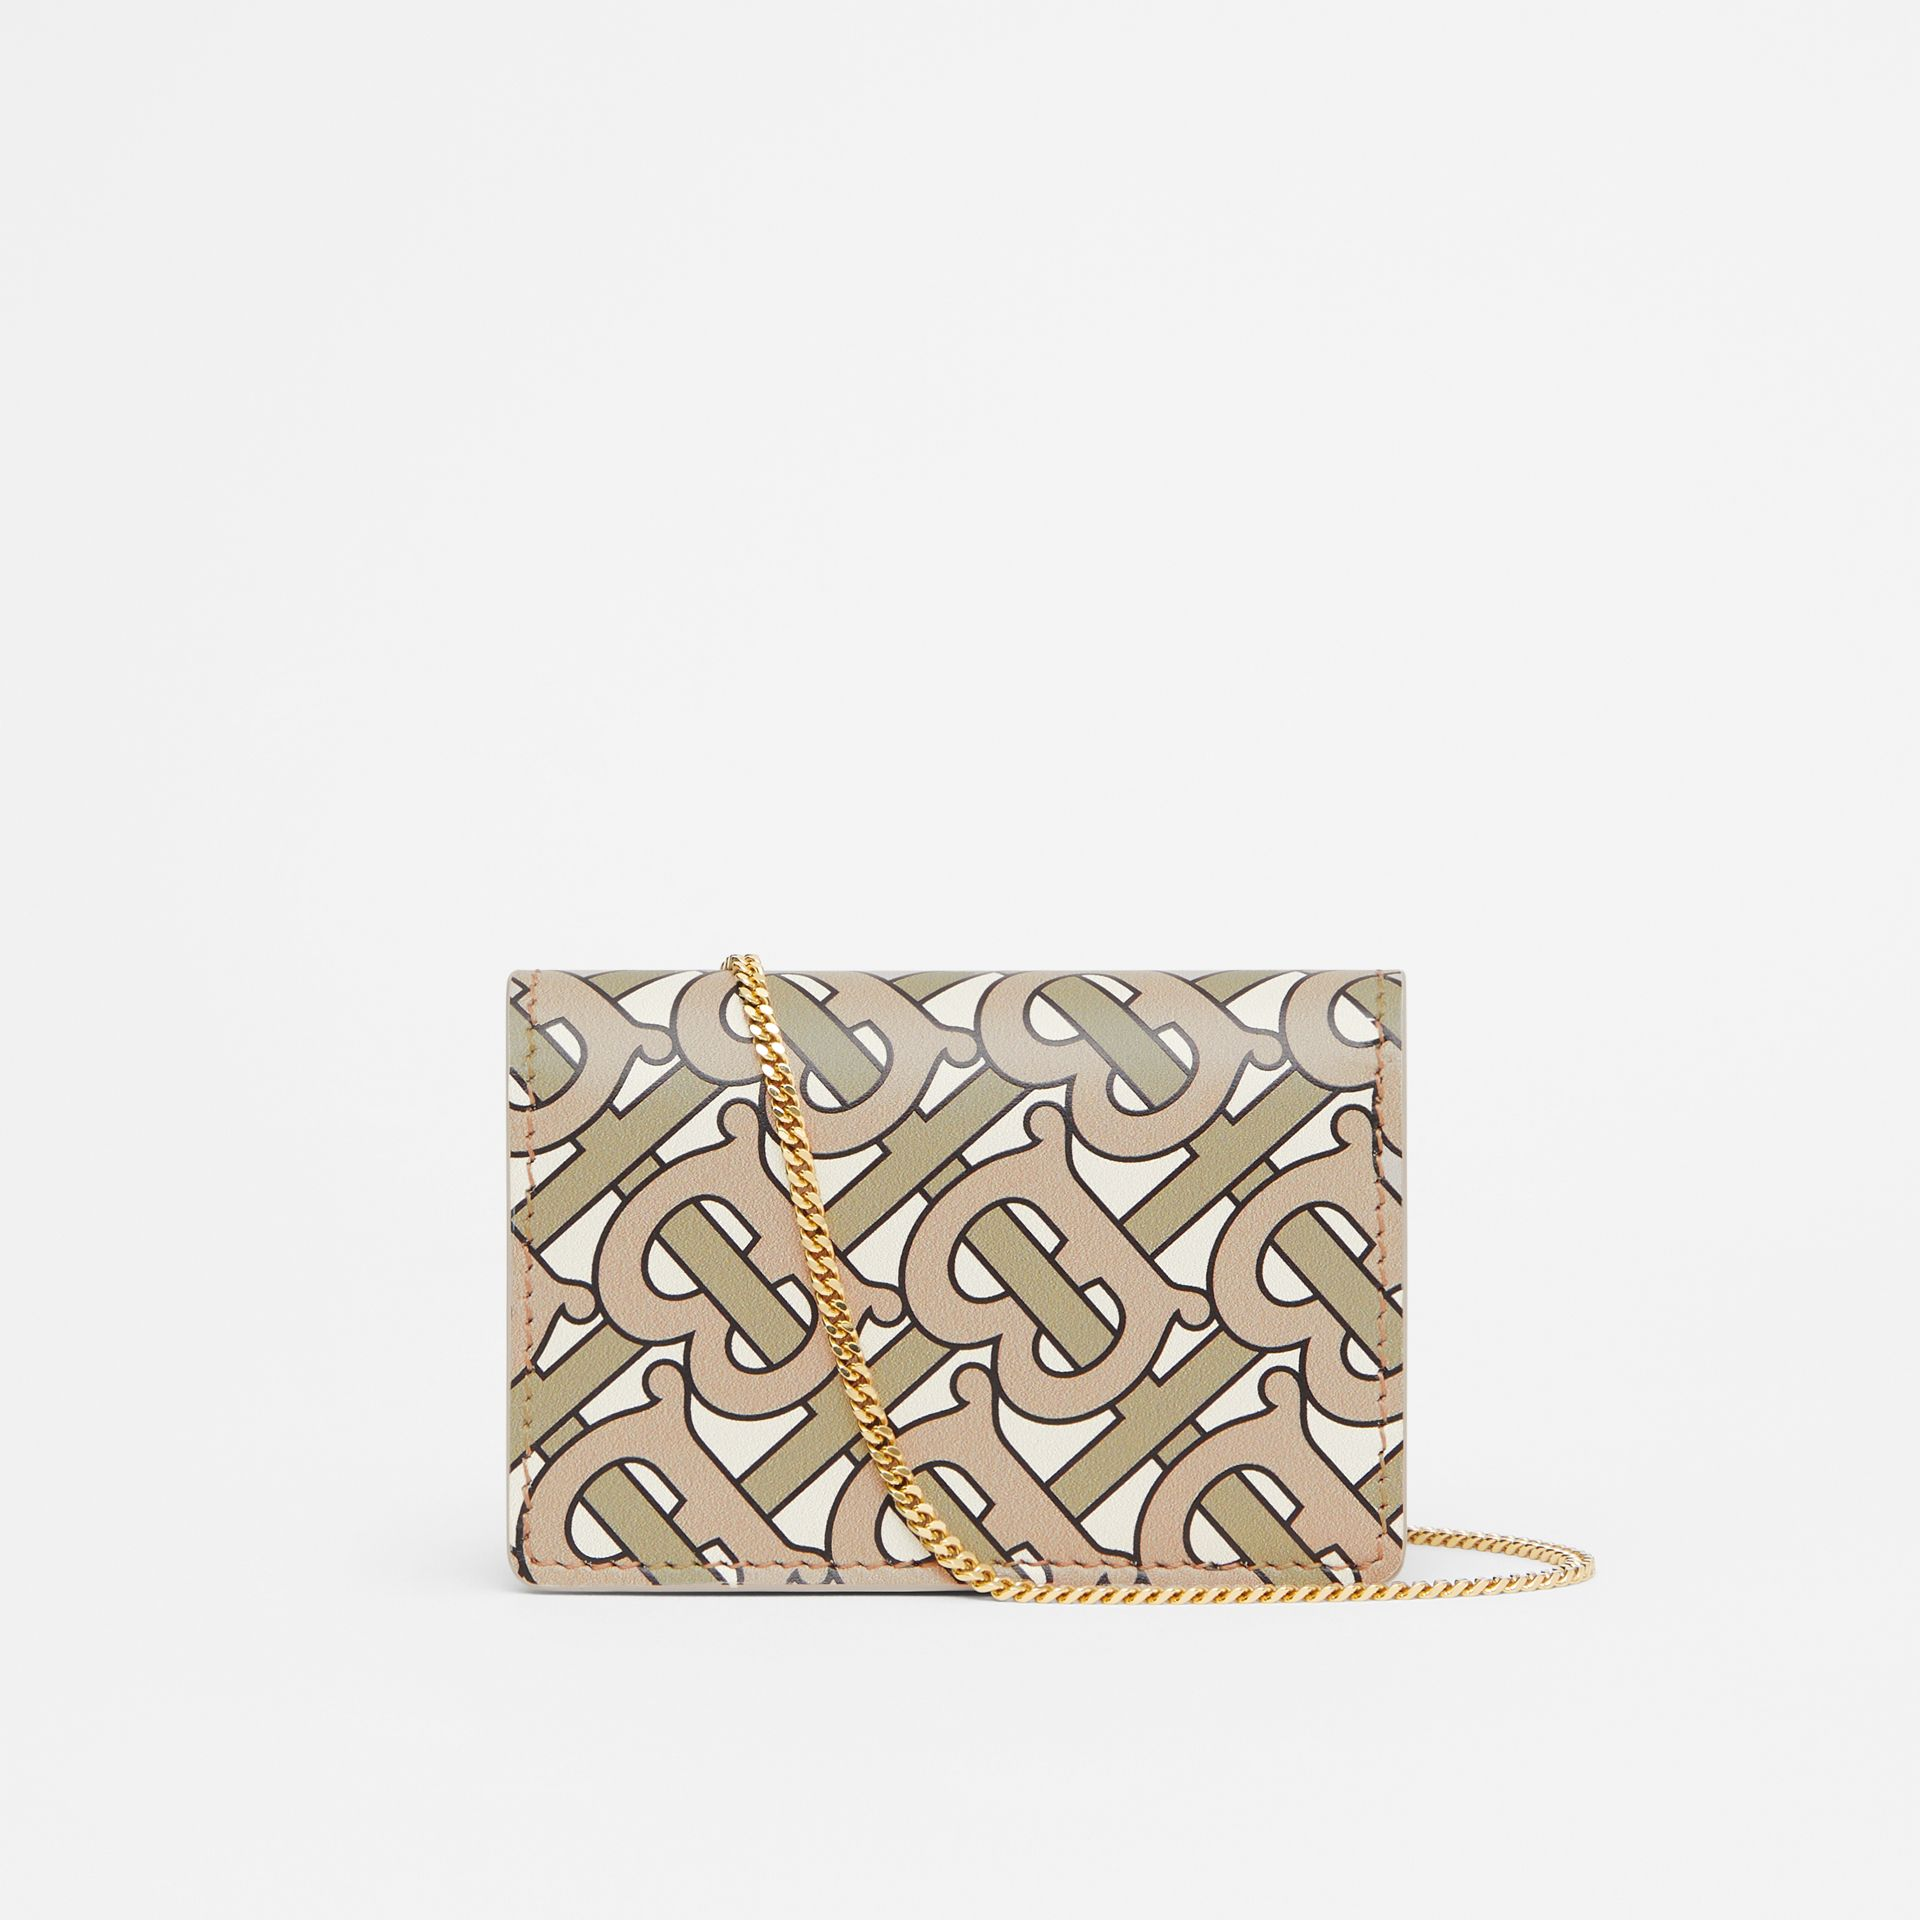 Monogram Print Card Case with Detachable Strap in Beige - Women | Burberry - gallery image 7